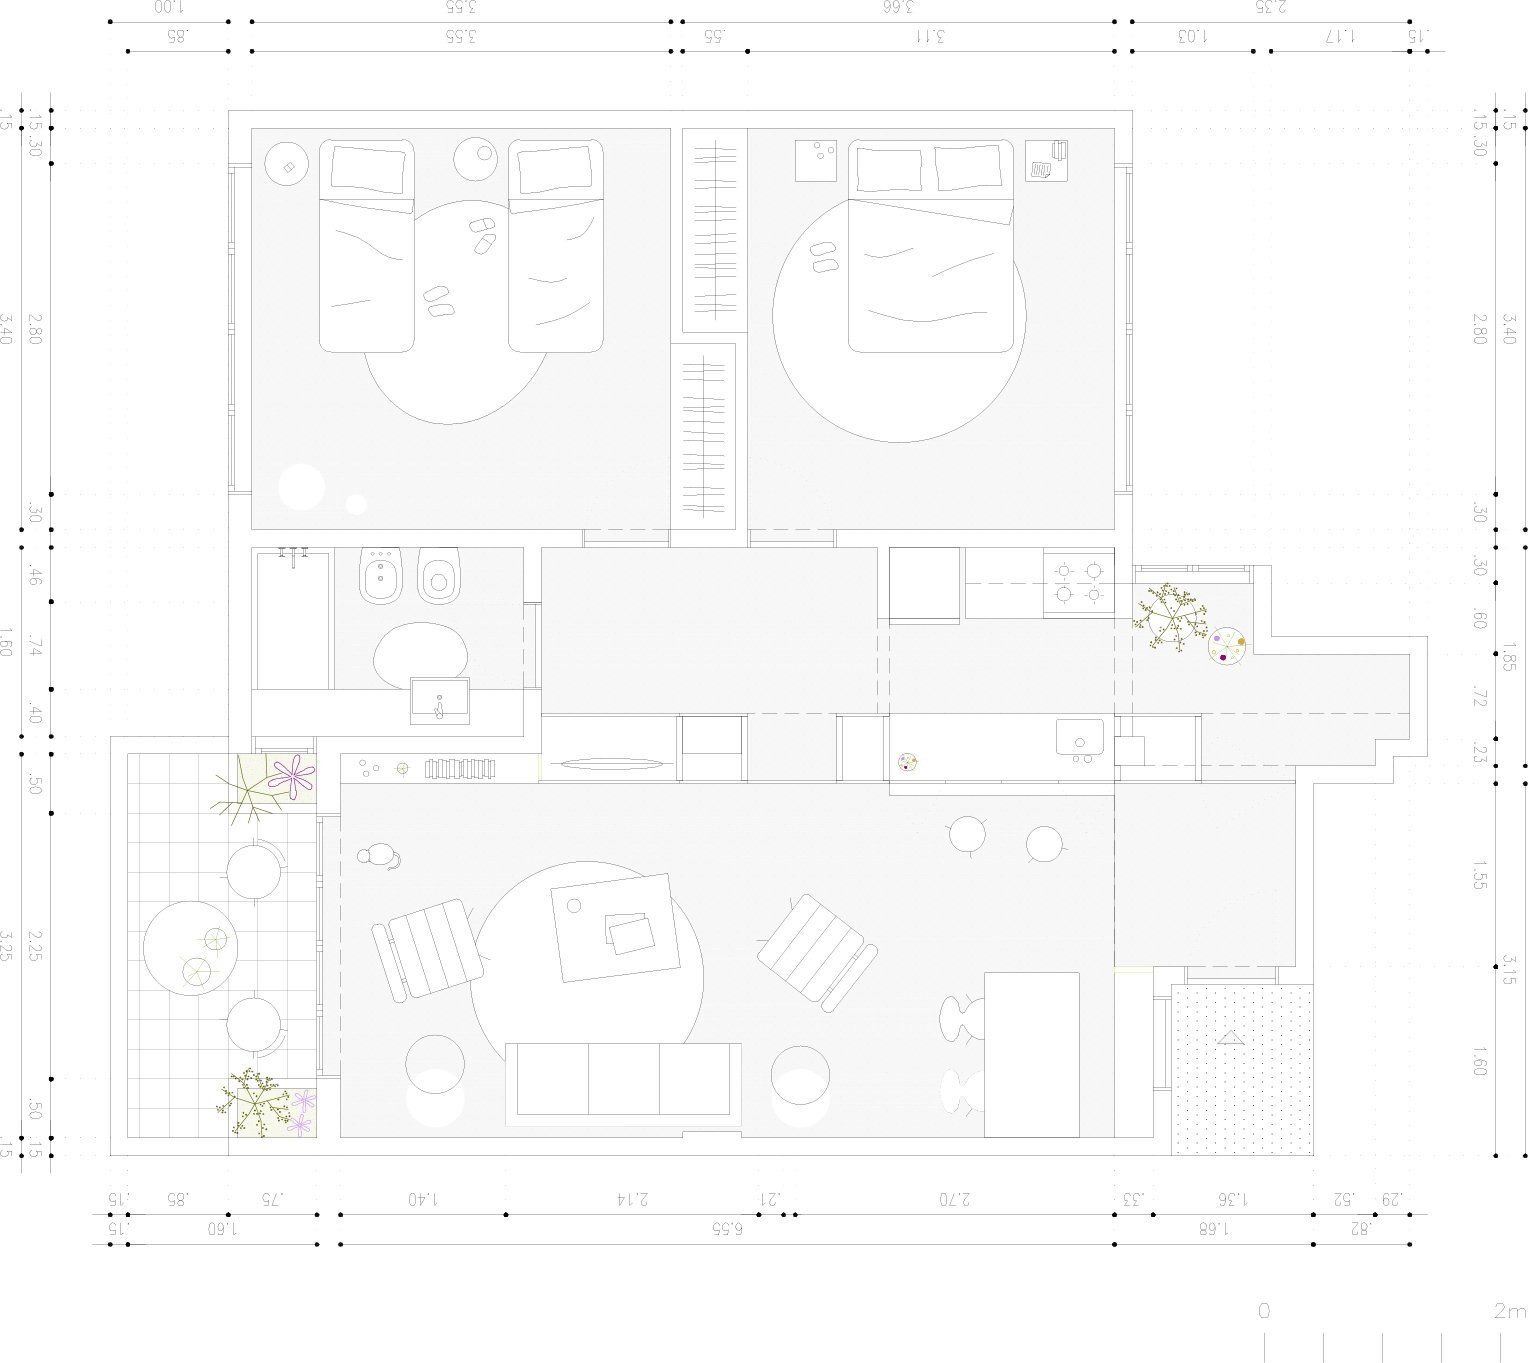 Thea Space - IR Arquitectura - Argentina - Floor Plan - Humble Homes